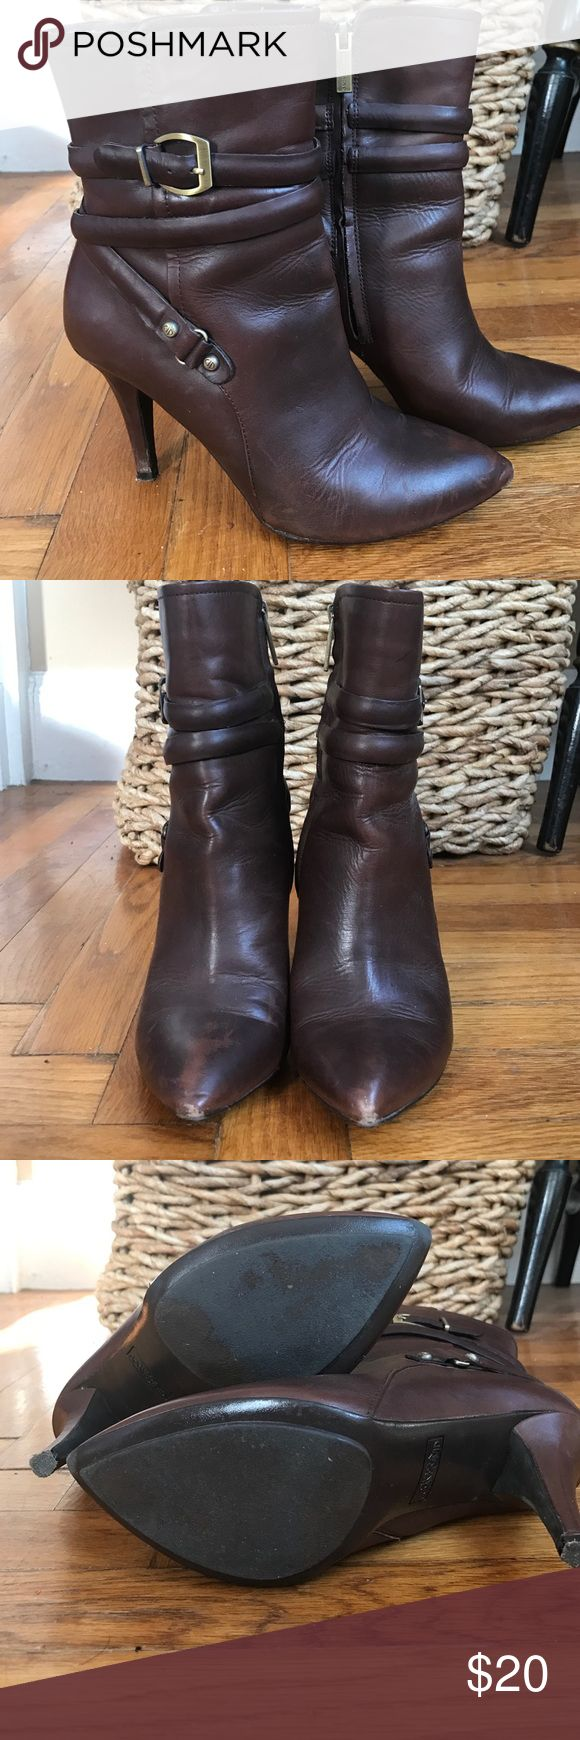 Circa Joan David Brown Heeled Boots Brown boots in good condition, slight wear to toes shown in picture. Gold buckle details. Looks great with a good pair of skinny jeans! circa joan david Shoes Heeled Boots